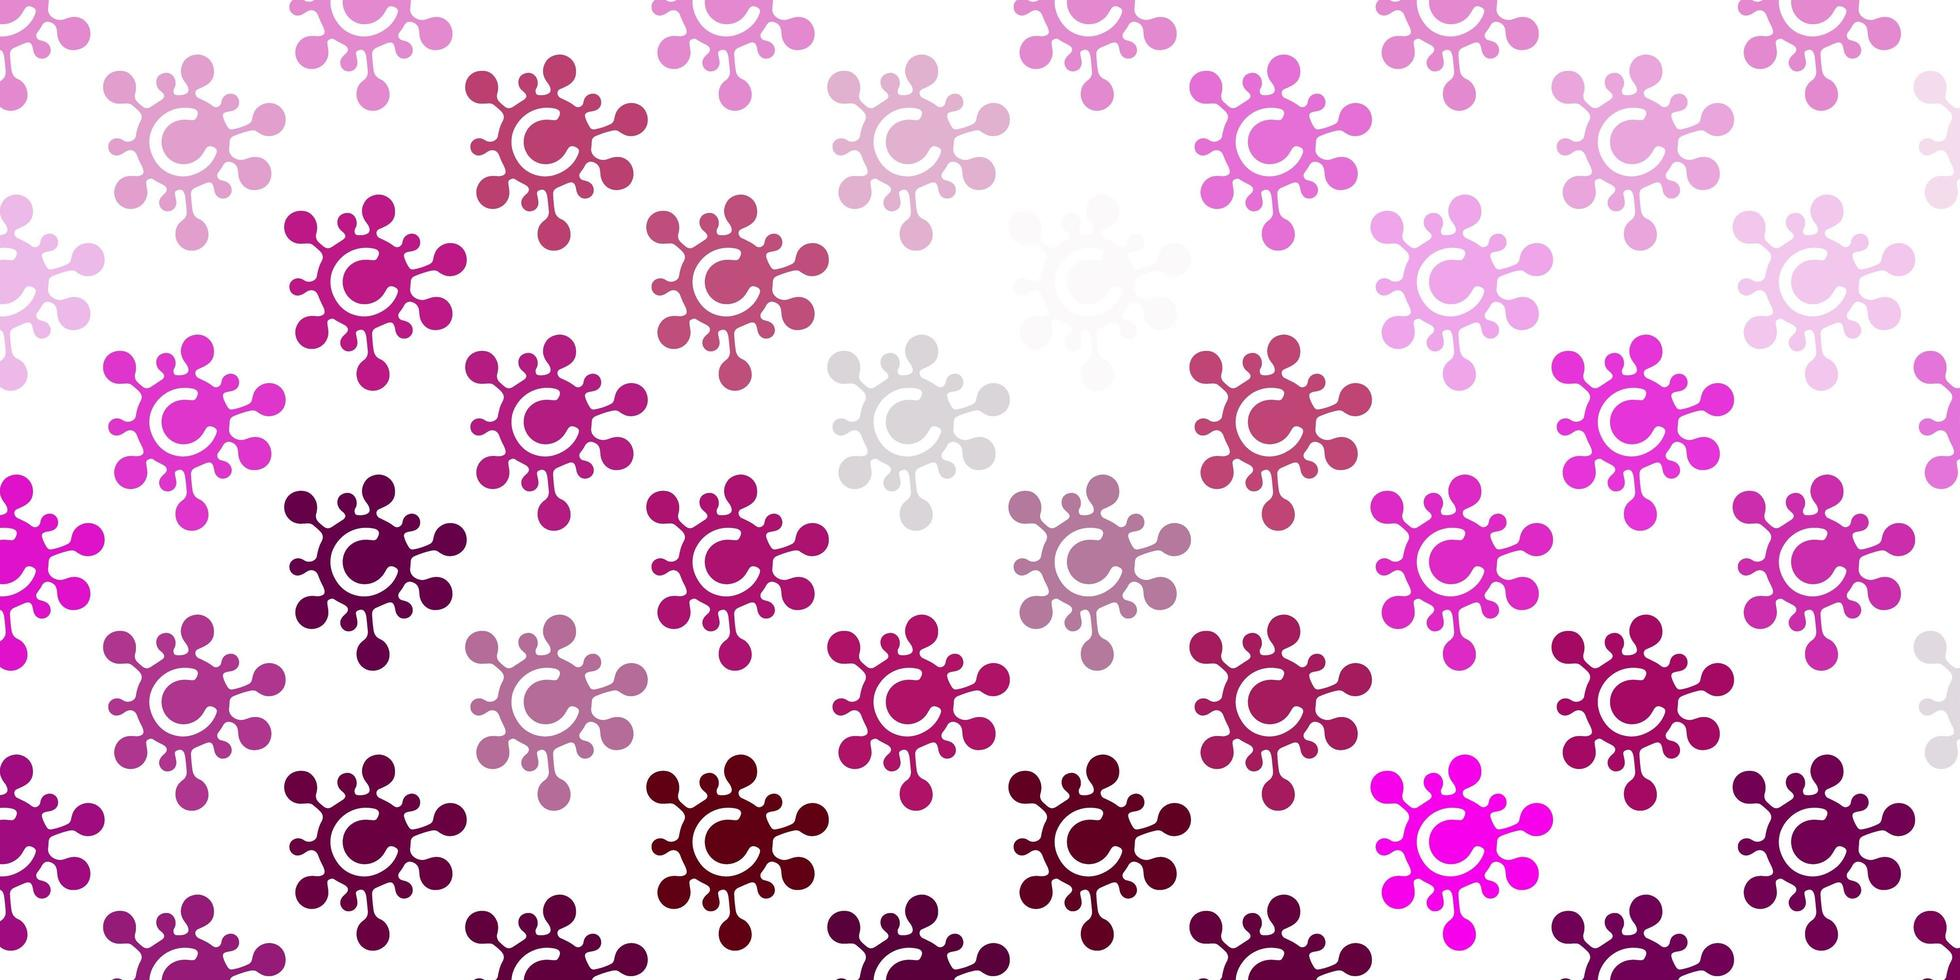 Light Pink vector texture with disease symbols.